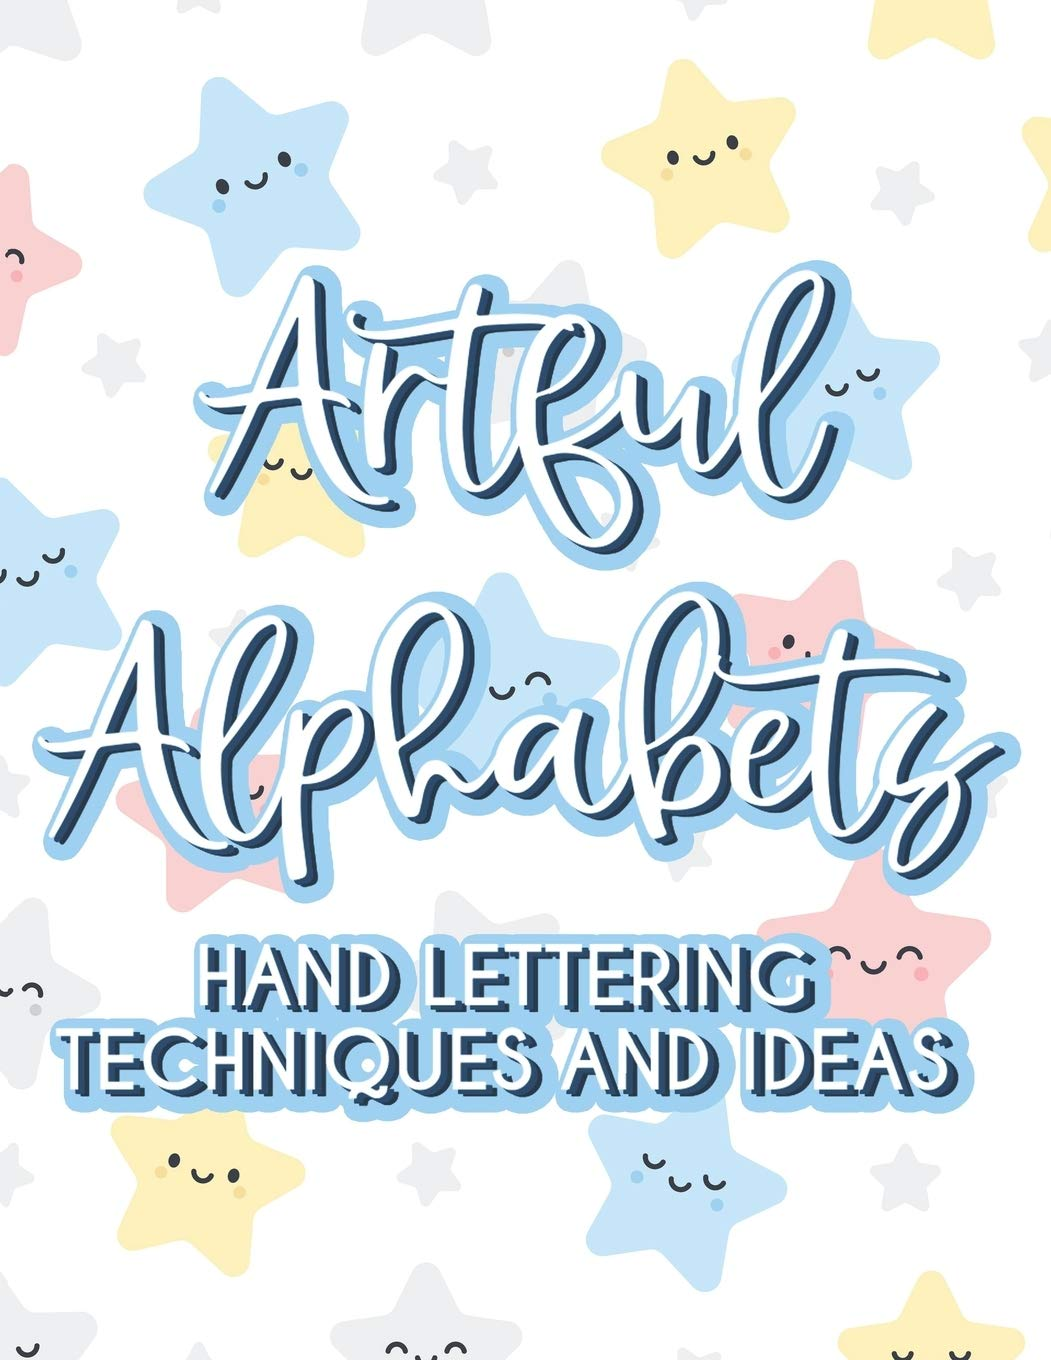 Artful Alphabets Hand Lettering Techniques And Ideas: Practice Sheets For Creative Handwriting, Simple Lettering And Modern Calligraphy For Women